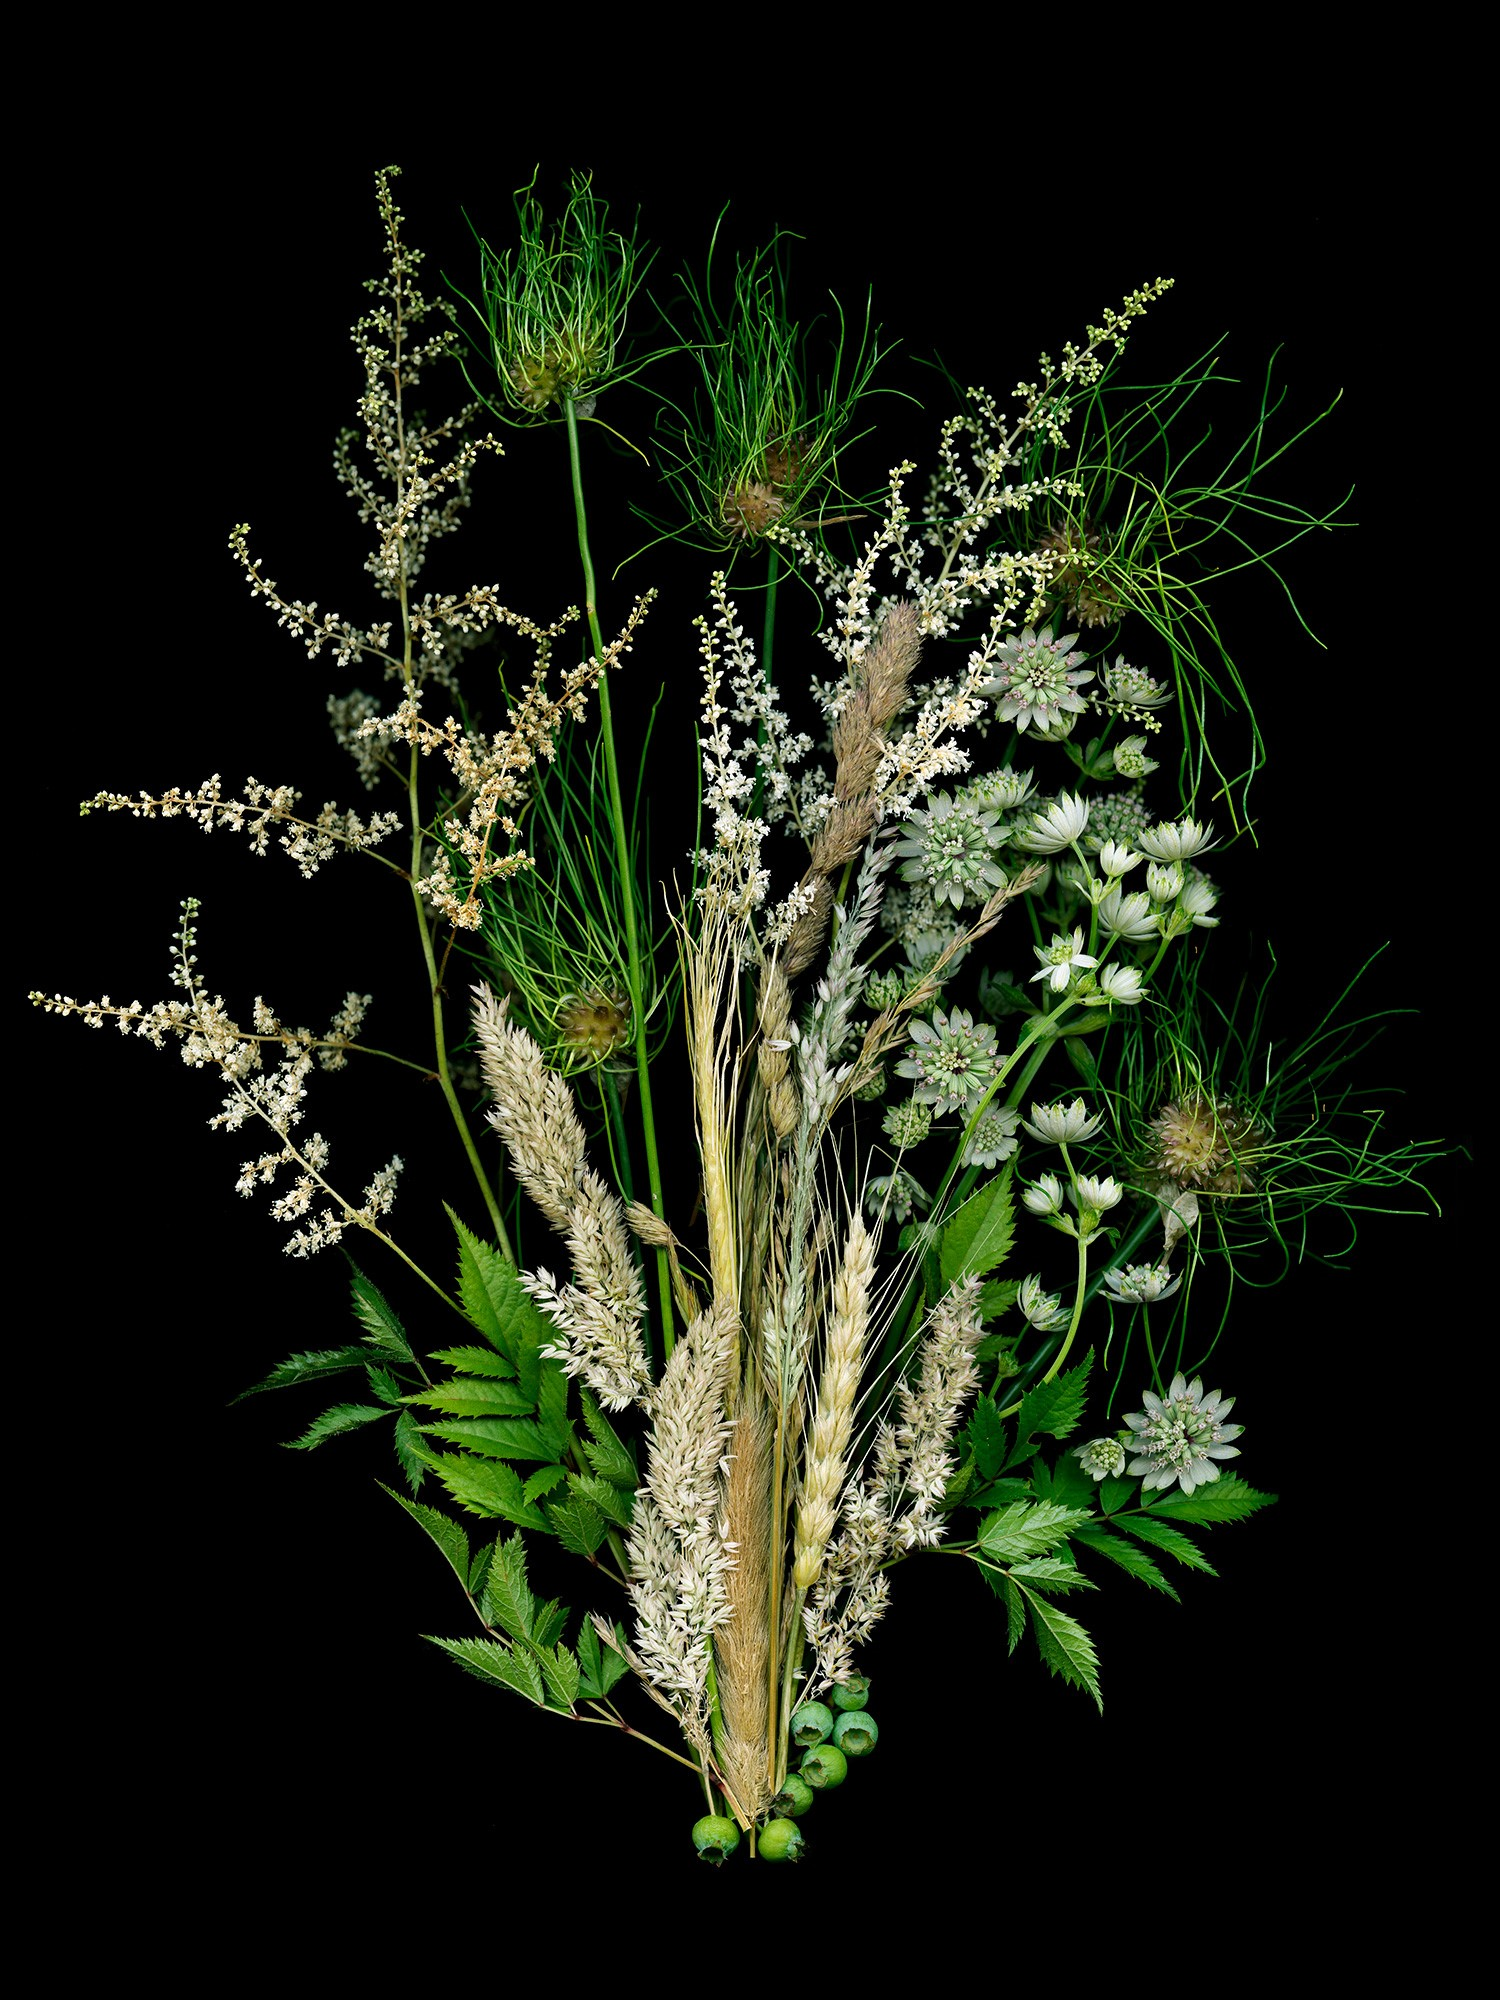 Honorable Mention - Grasses and Astilbe